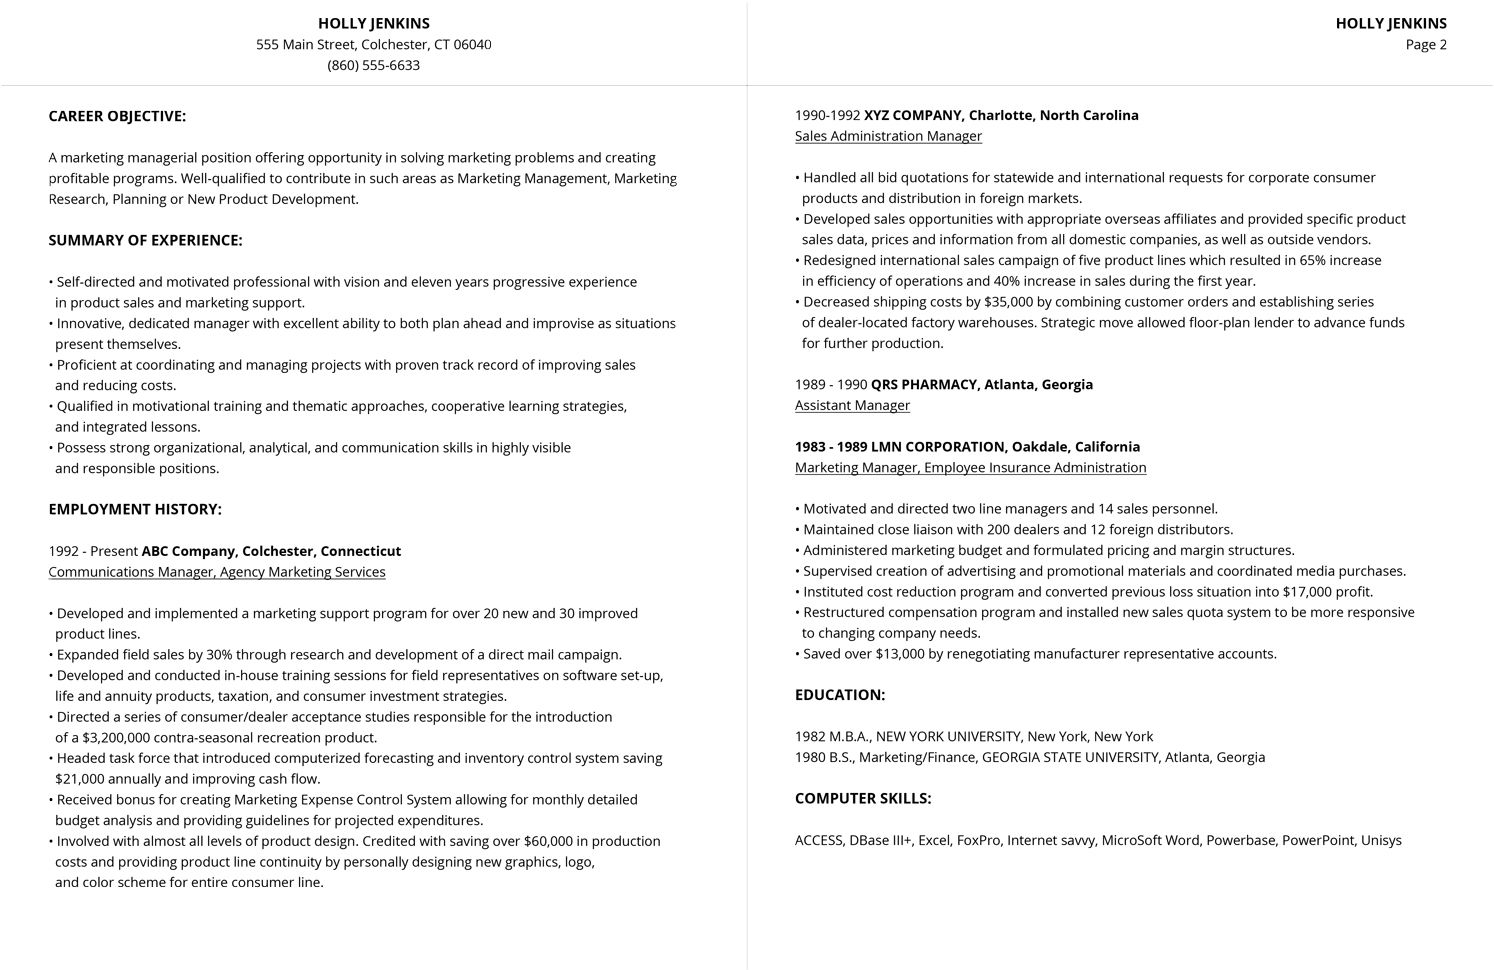 3 Resume Formats for 2019 Resume format, Job resume examples